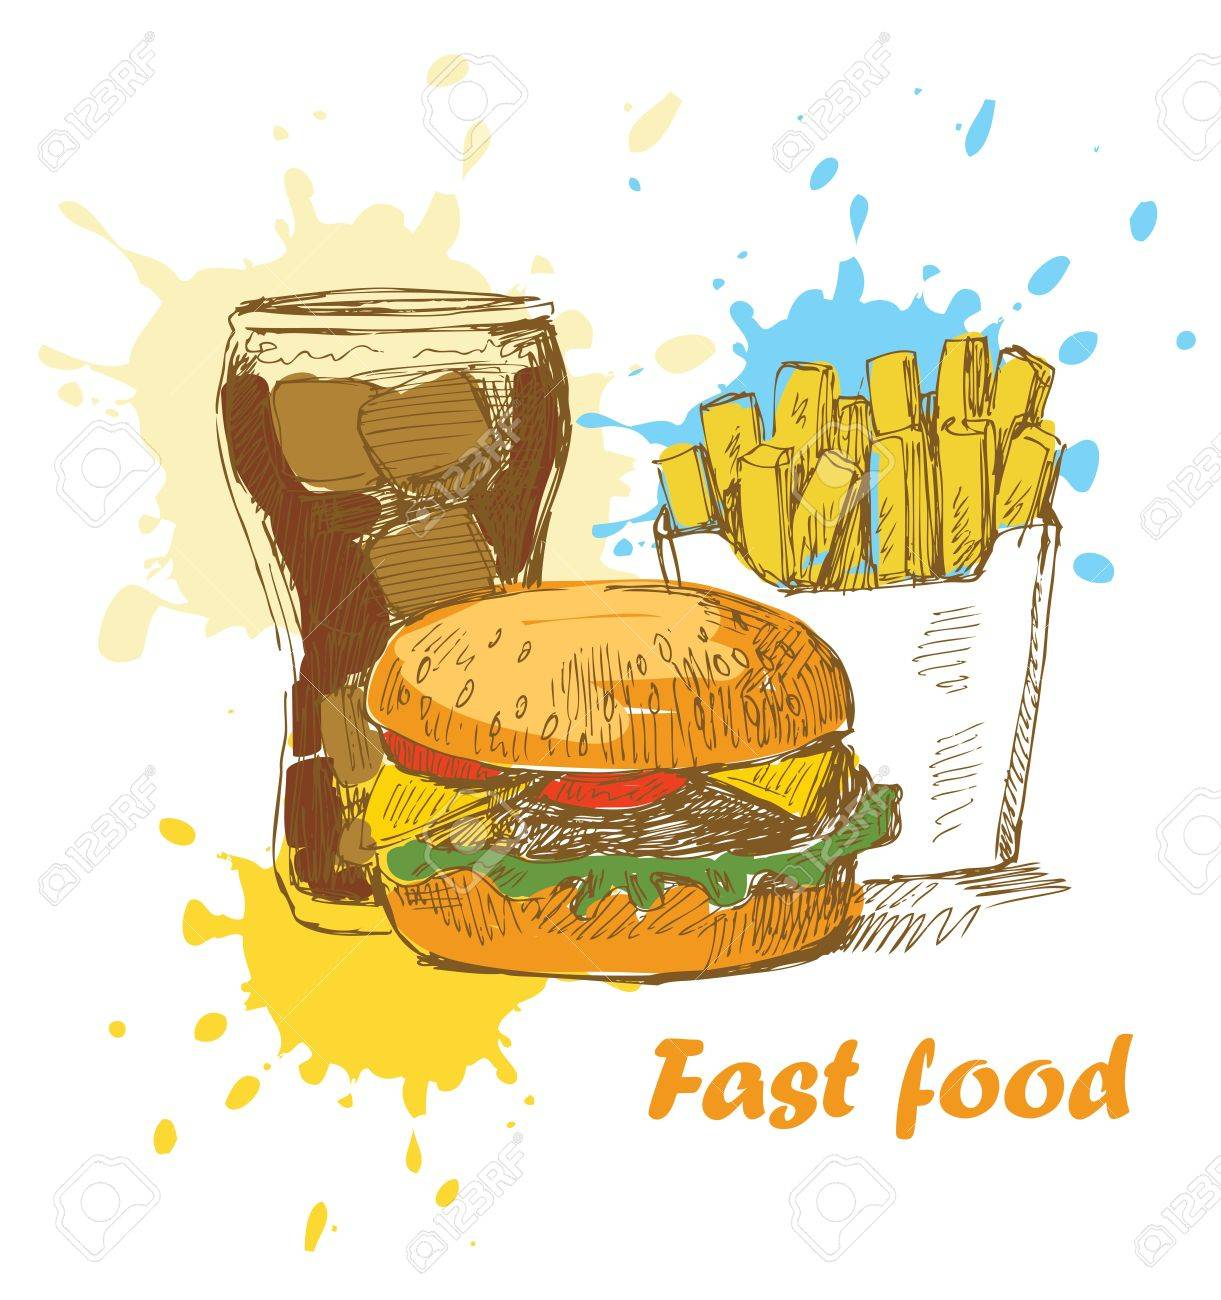 fast food background Stock Vector - 13941032